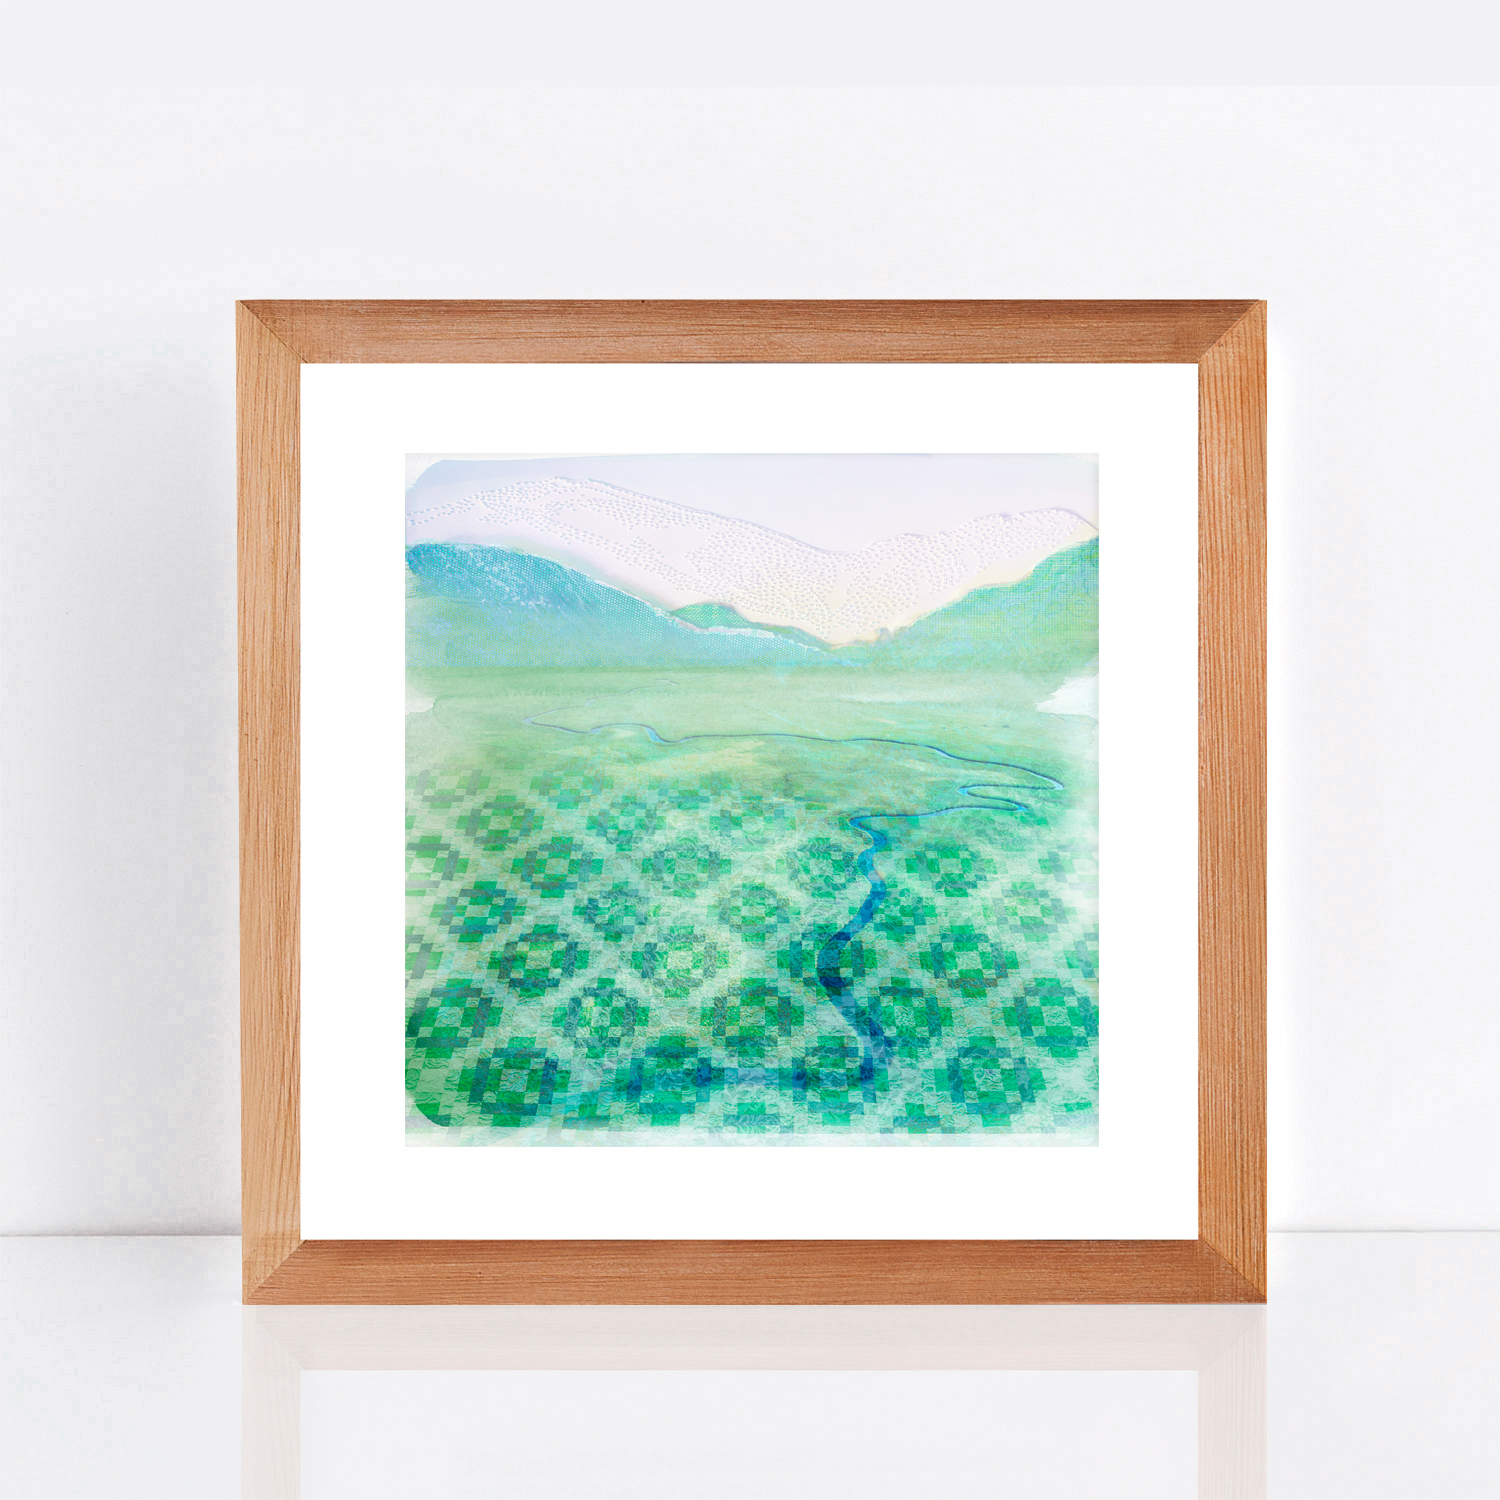 fineart-thelookoutii-framed